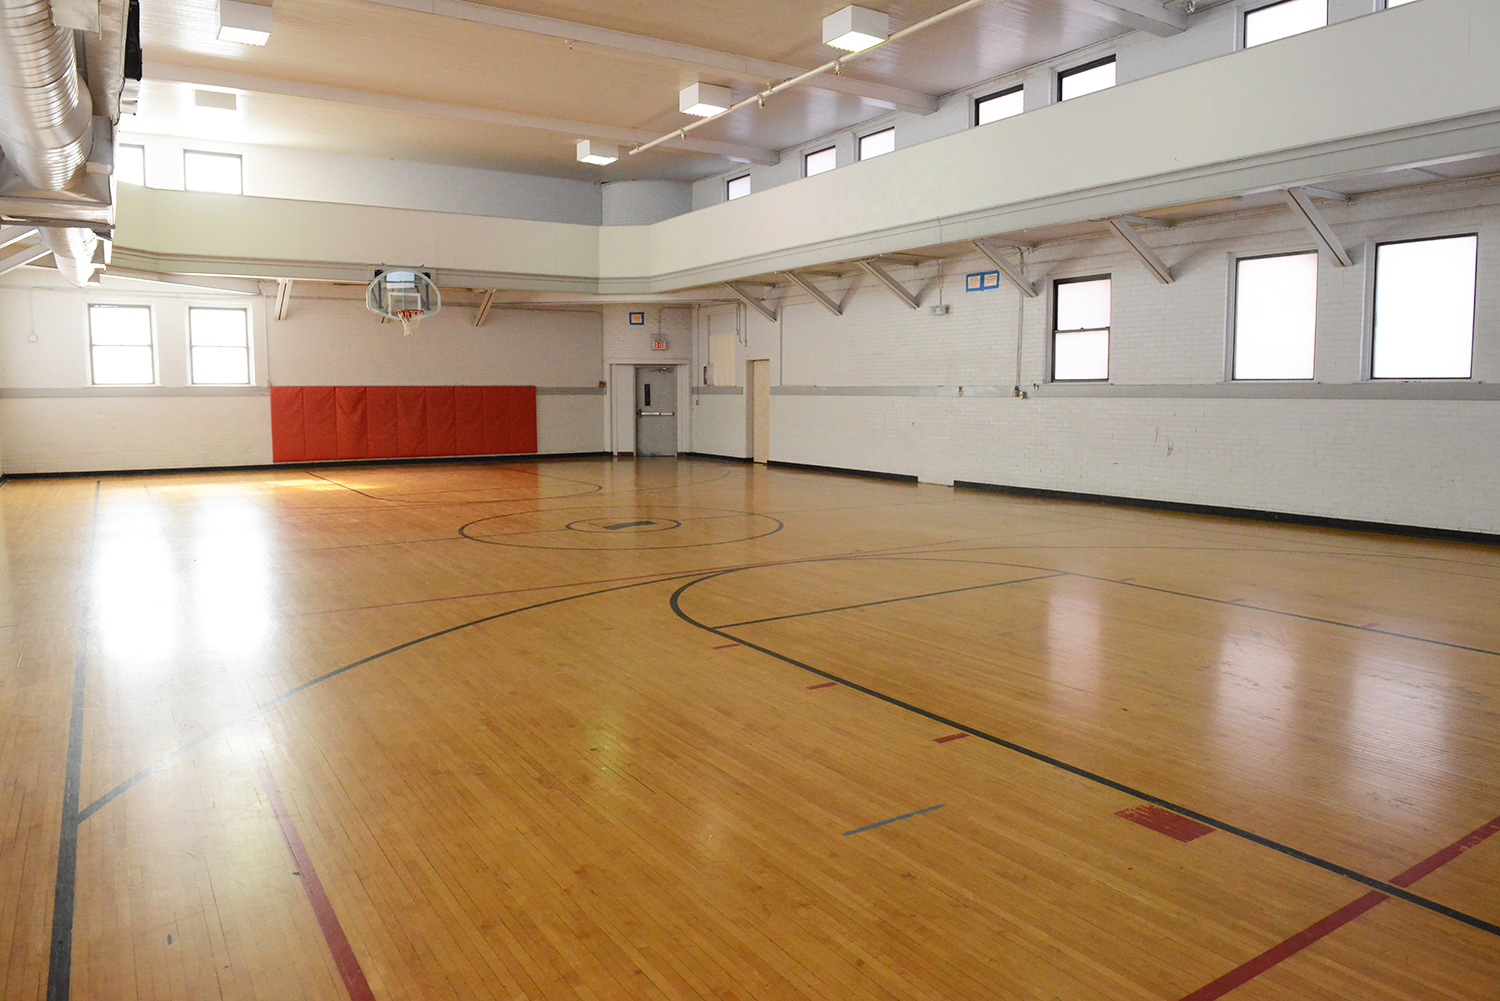 Gym at the Atchison Family YMCA